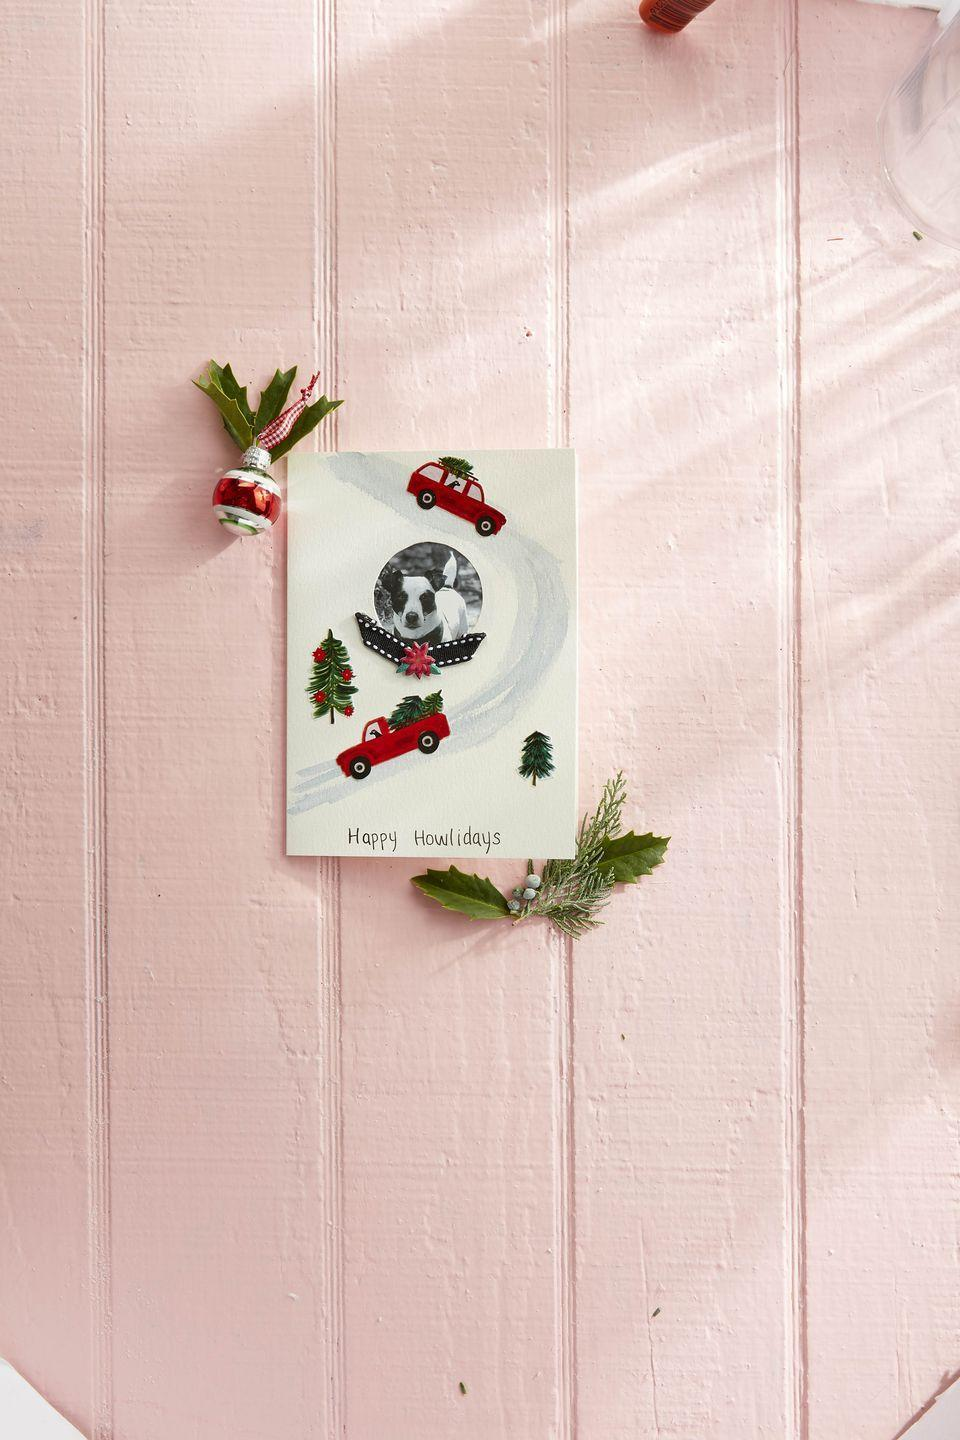 """<p>Send love from your furry family member this year with this easy DIY photo card. </p><p><strong>To make:</strong> Cut a small round hole in the front of a plain greeting card. Glue a picture to the inside of the card so that it is centered in the opening (you can glue a piece of corresponding color paper over the back of the picture to create a clean finish, if desired). Use a light gray watercolor marker to draw a snowy road around the picture. Cut out trees, cars, and truck from holiday-themed wrapping paper and glue to the card. Attach a short length of ribbon and additional wrapping paper decoration just below the picture.</p><p><a class=""""link rapid-noclick-resp"""" href=""""https://www.amazon.com/American-Greetings-Reversible-Christmas-Wrapping/dp/B07V9YTYRH/ref=sr_1_6?tag=syn-yahoo-20&ascsubtag=%5Bartid%7C10050.g.3872%5Bsrc%7Cyahoo-us"""" rel=""""nofollow noopener"""" target=""""_blank"""" data-ylk=""""slk:SHOP WRAPPING PAPER"""">SHOP WRAPPING PAPER</a></p>"""